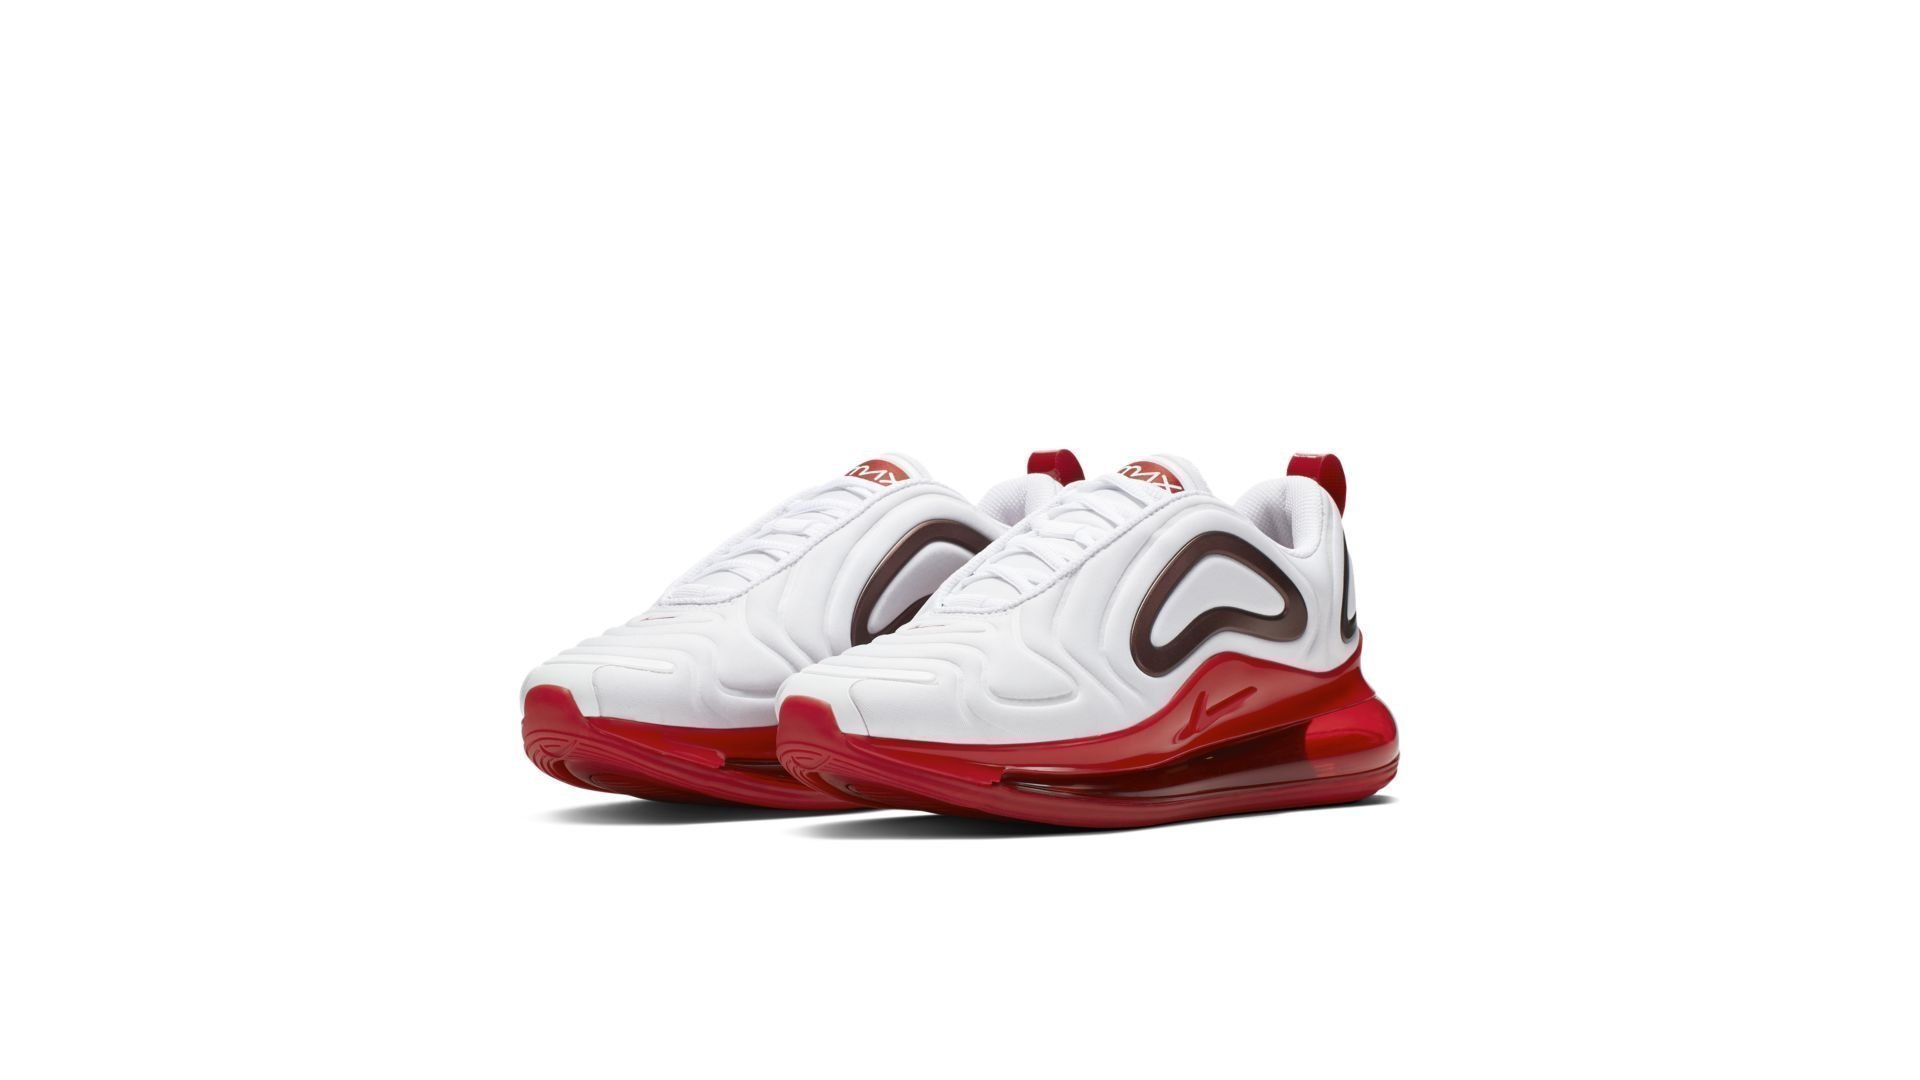 Nike WMNS Air Max 720 SE 'Gym Red' (CD2047-100)